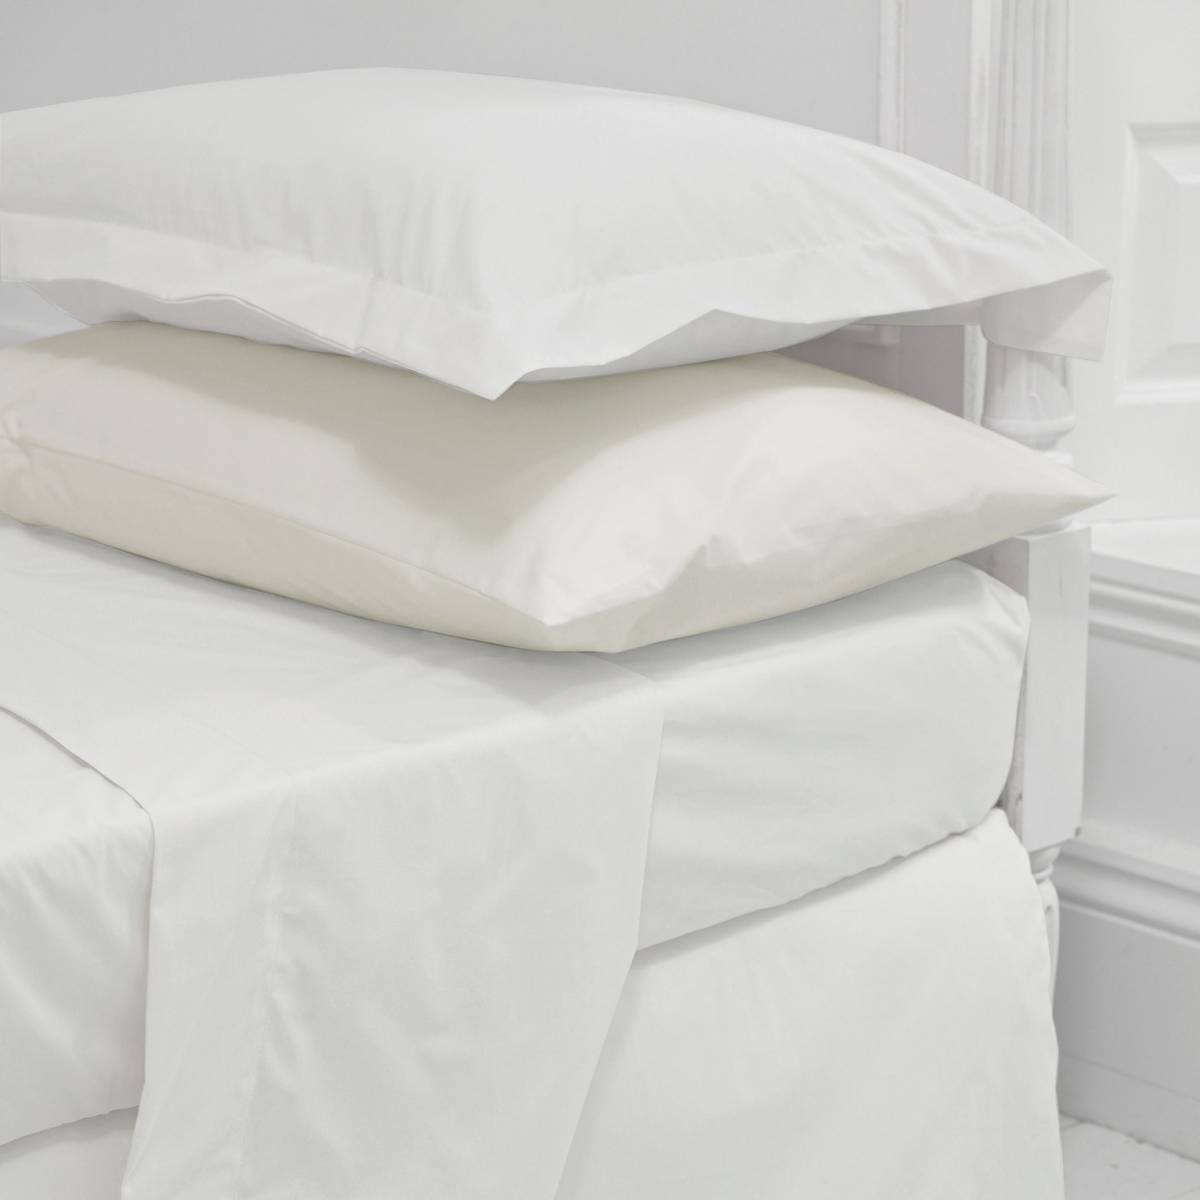 Brilliant cotton percale sheets with Amazing Combine Color Sheets Ideas